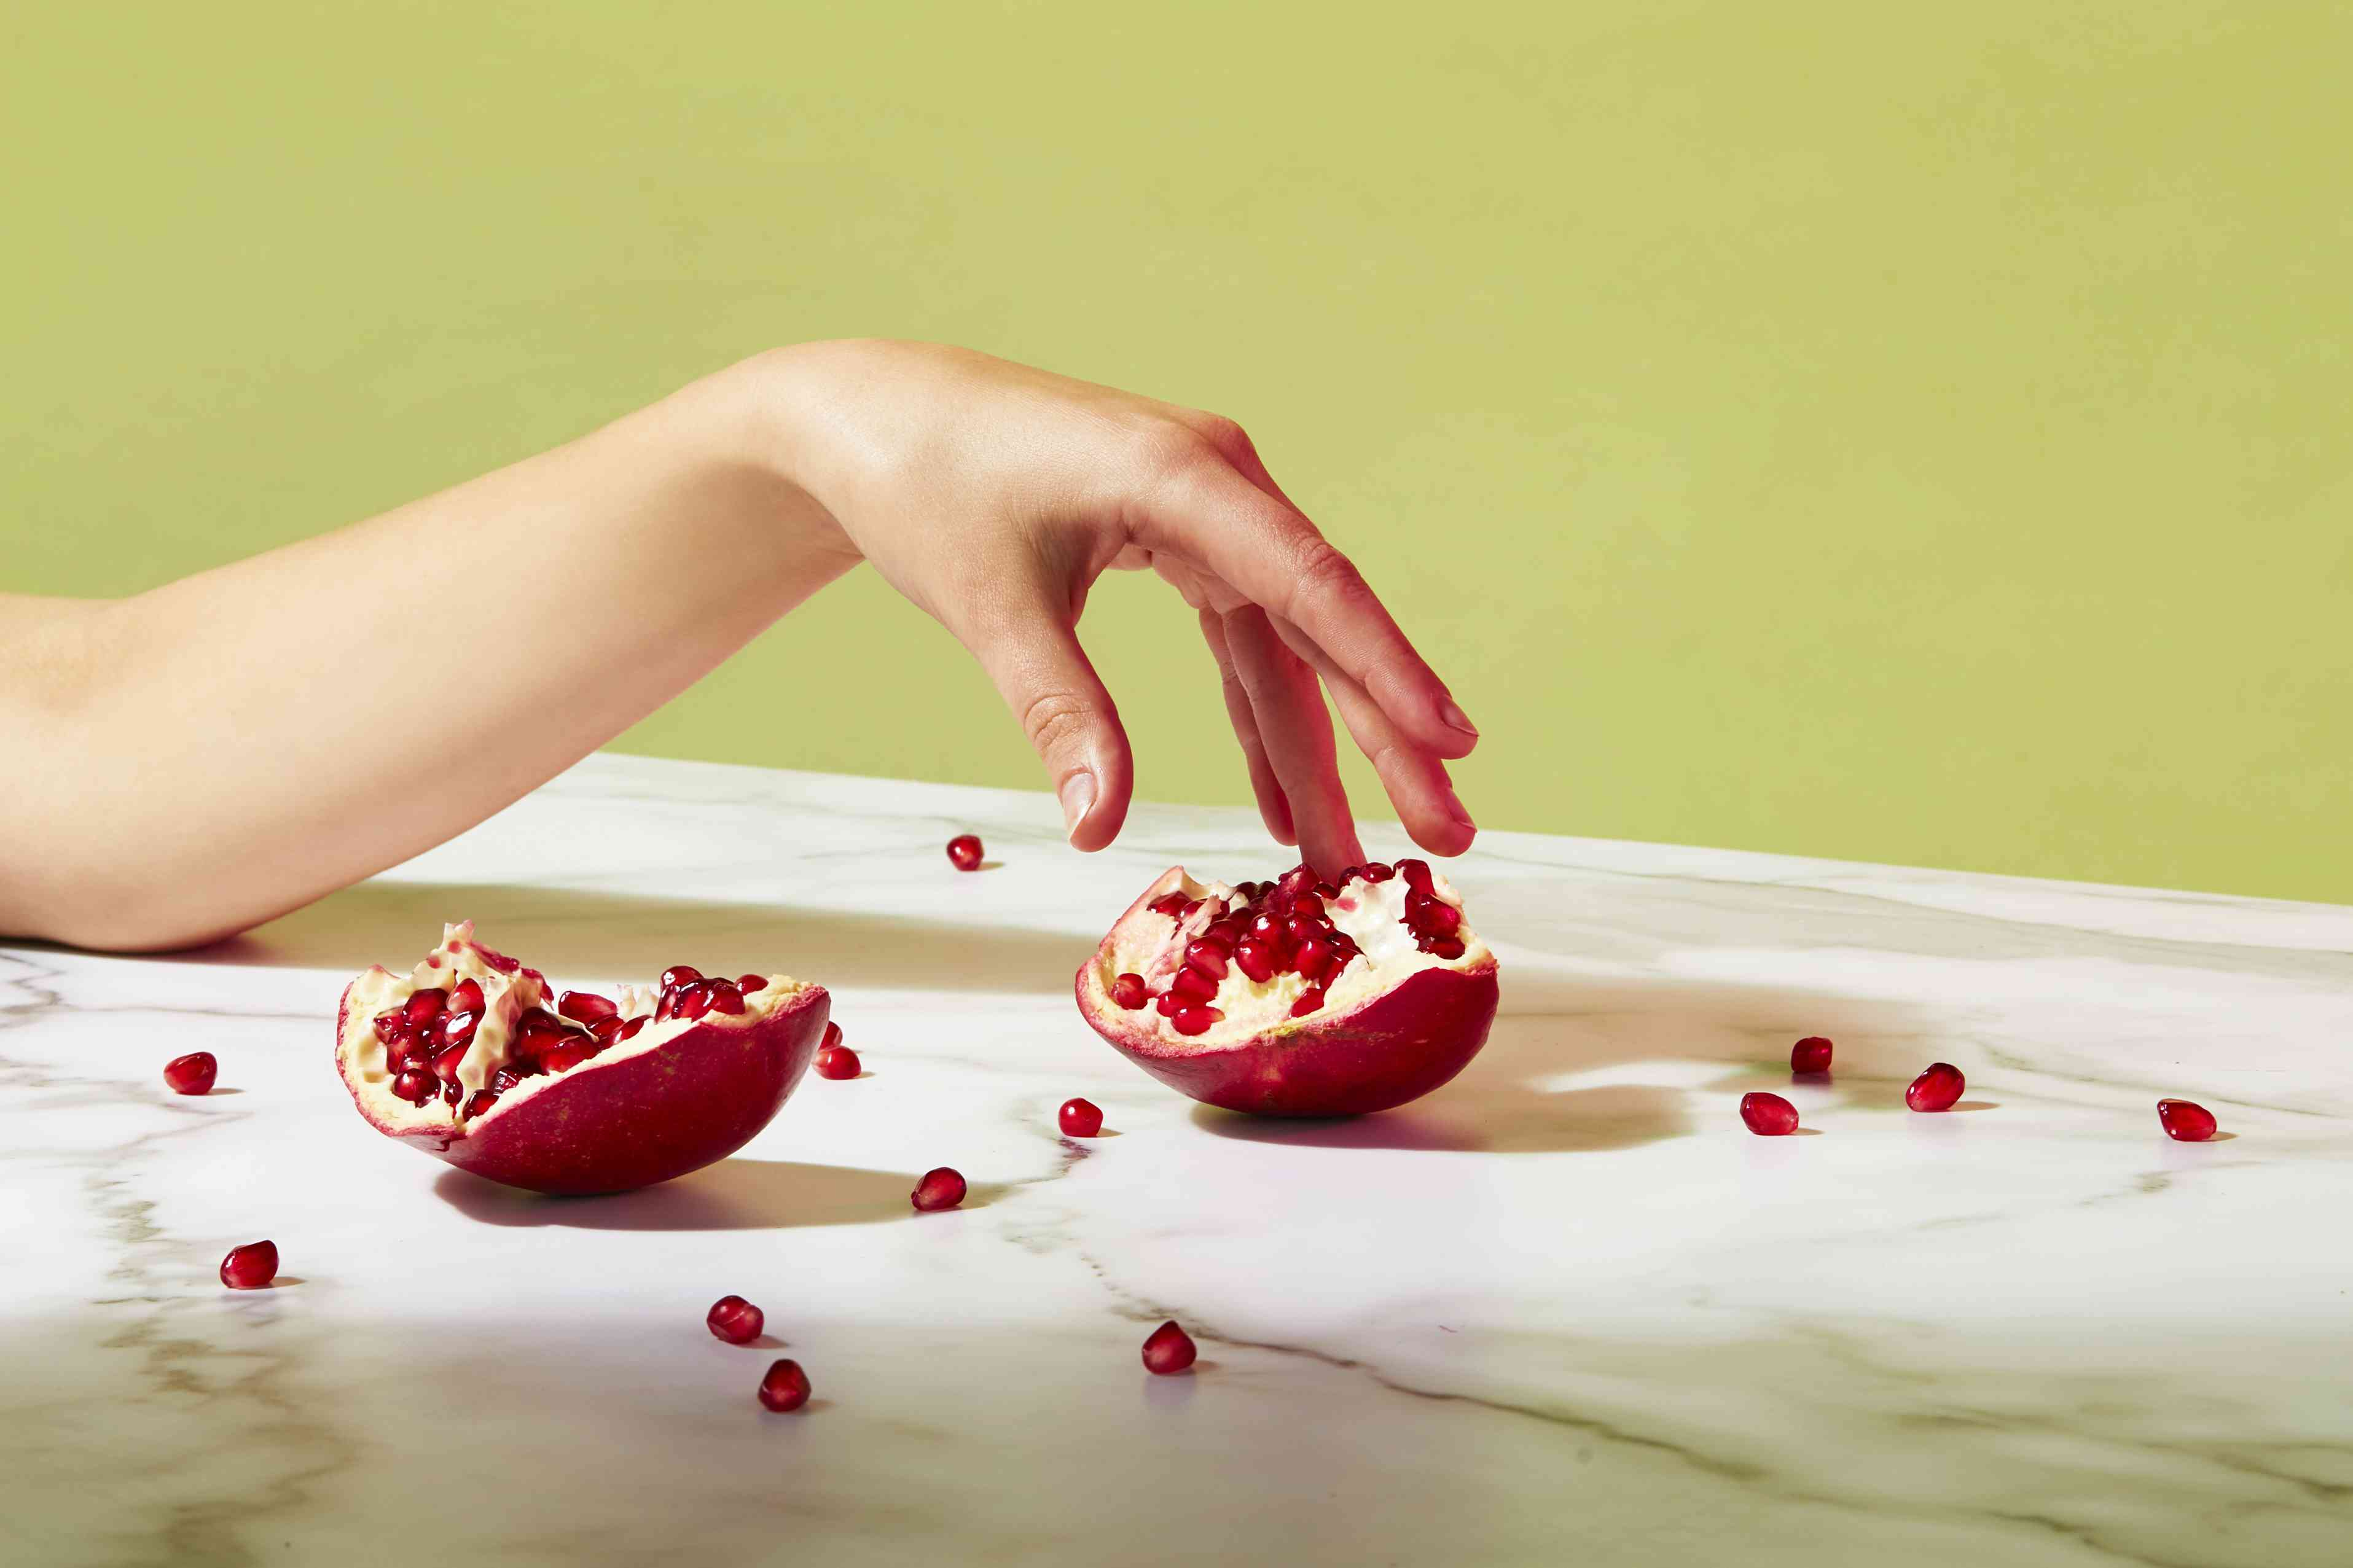 arm and pomegranate in strong lighting